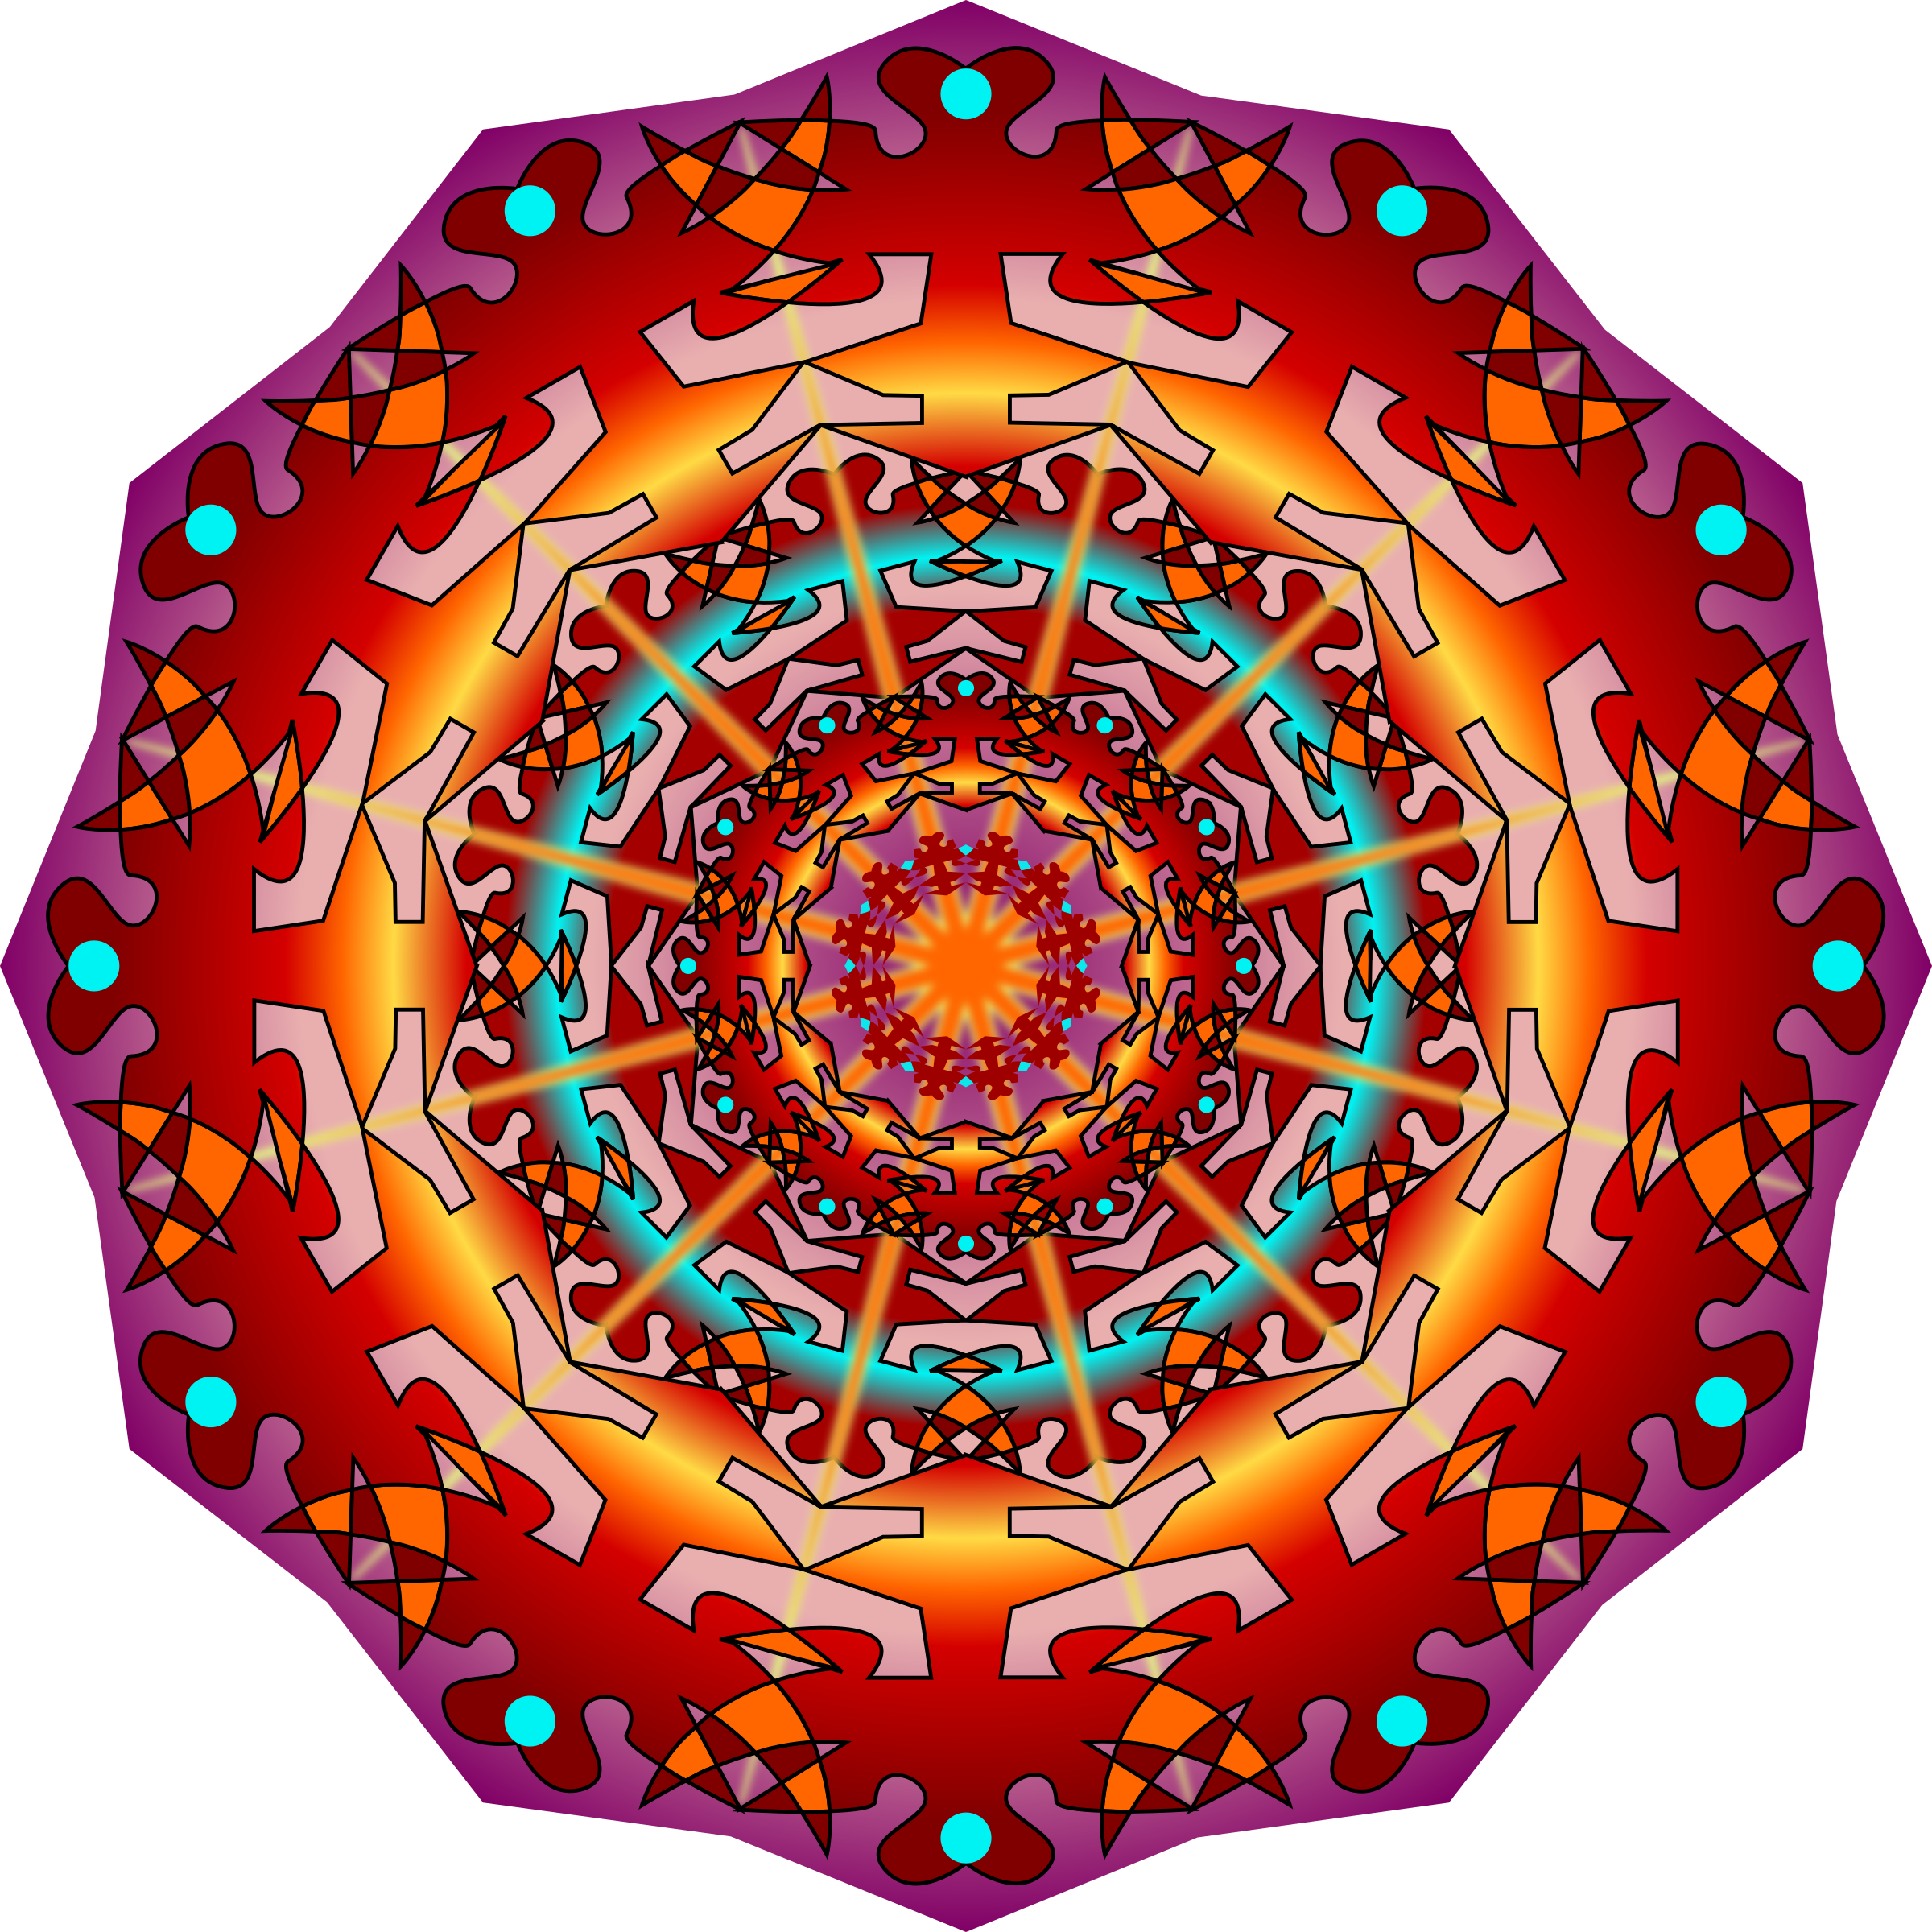 Fire mandala by Tomas Sobek